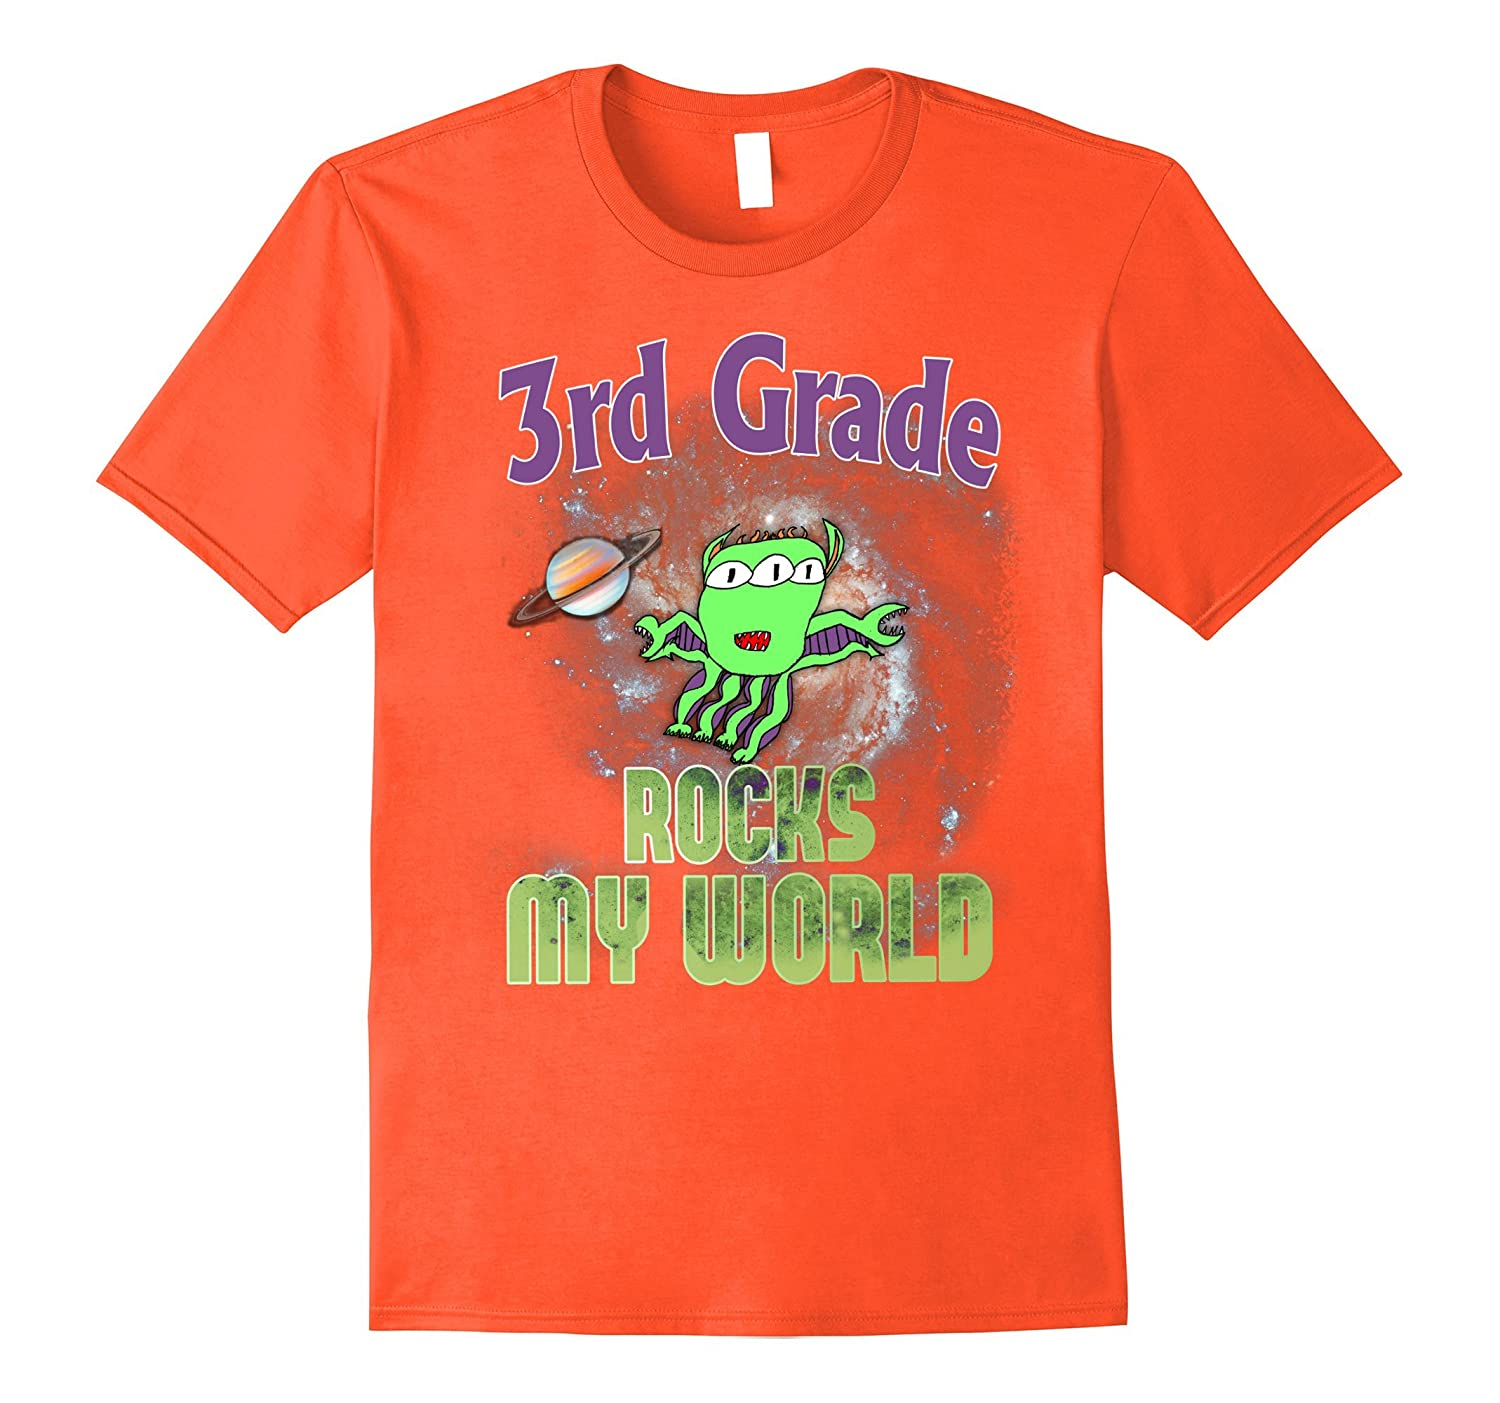 3rd Grade Rocks T Shirt Tee - Back to School Third Grade-FL